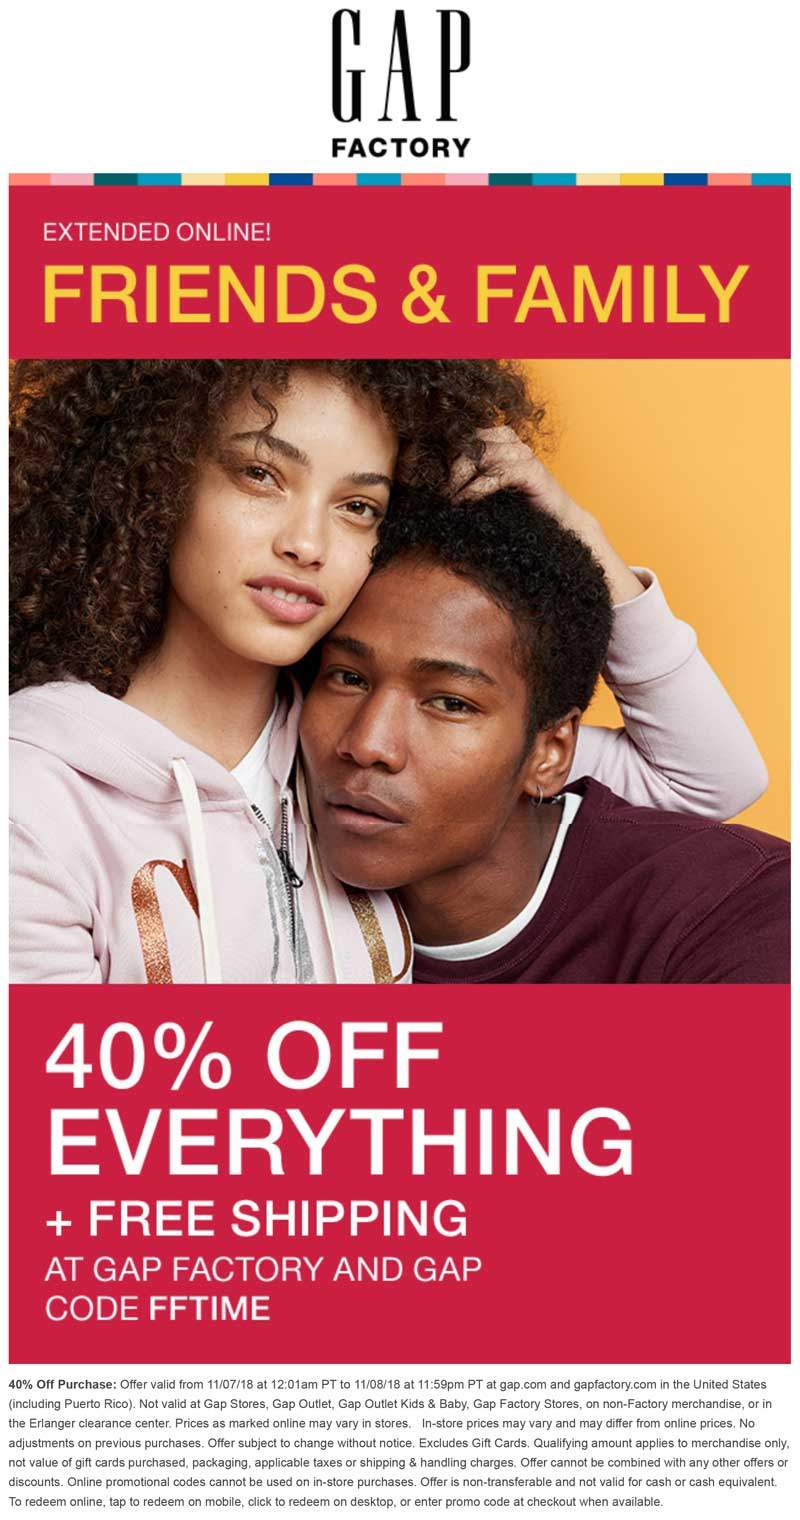 Gap Factory coupons & promo code for [August 2020]